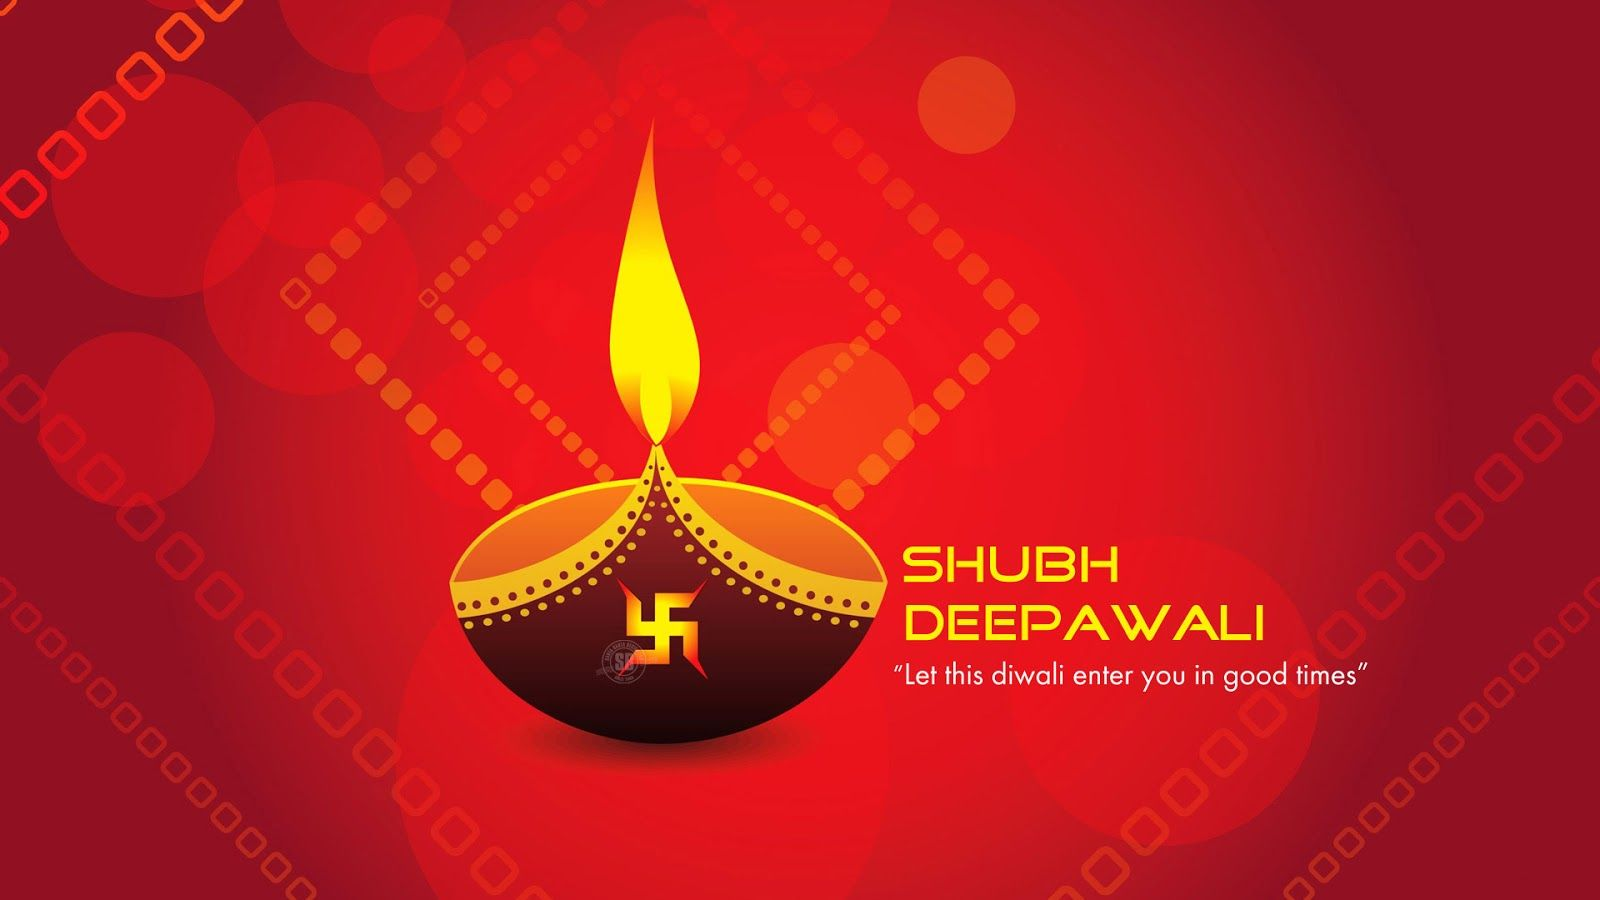 Diwali greetings in english indian travel pictures images diwali greetings m4hsunfo